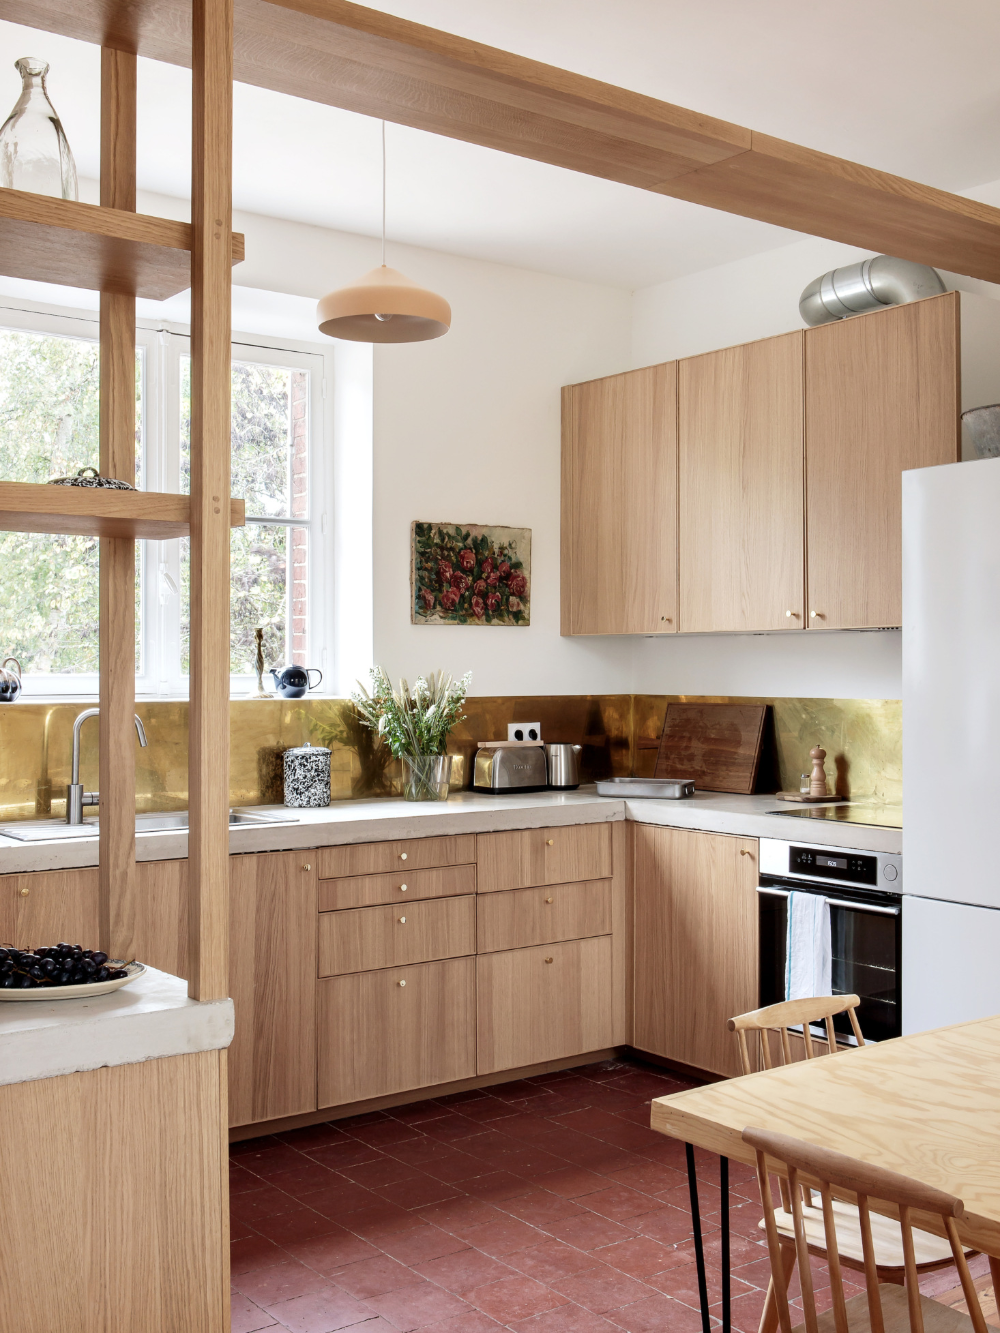 In Praise Of Ikea 20 Ikea Kitchens From The Remodelista Archives Remodelista Riverside House Ikea Kitchen Cabinets Kitchen Design